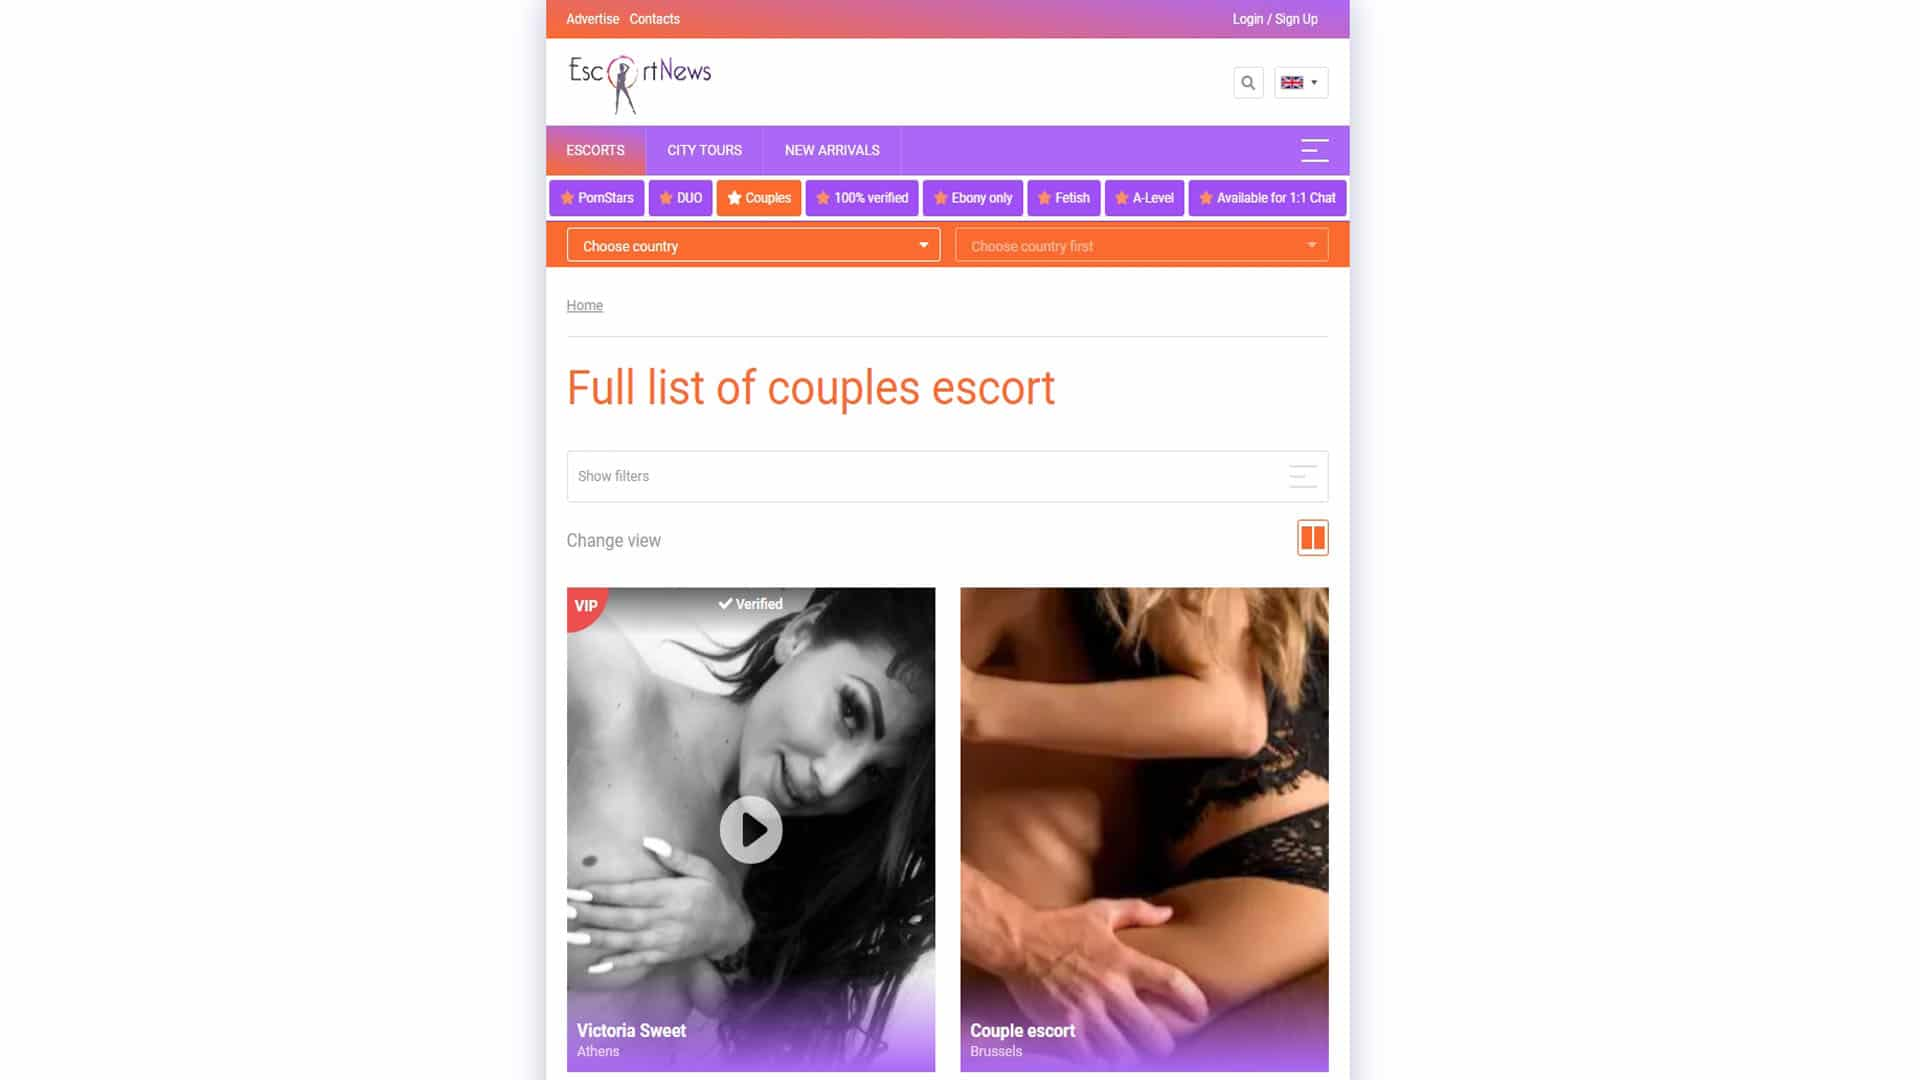 EscortNews Couples